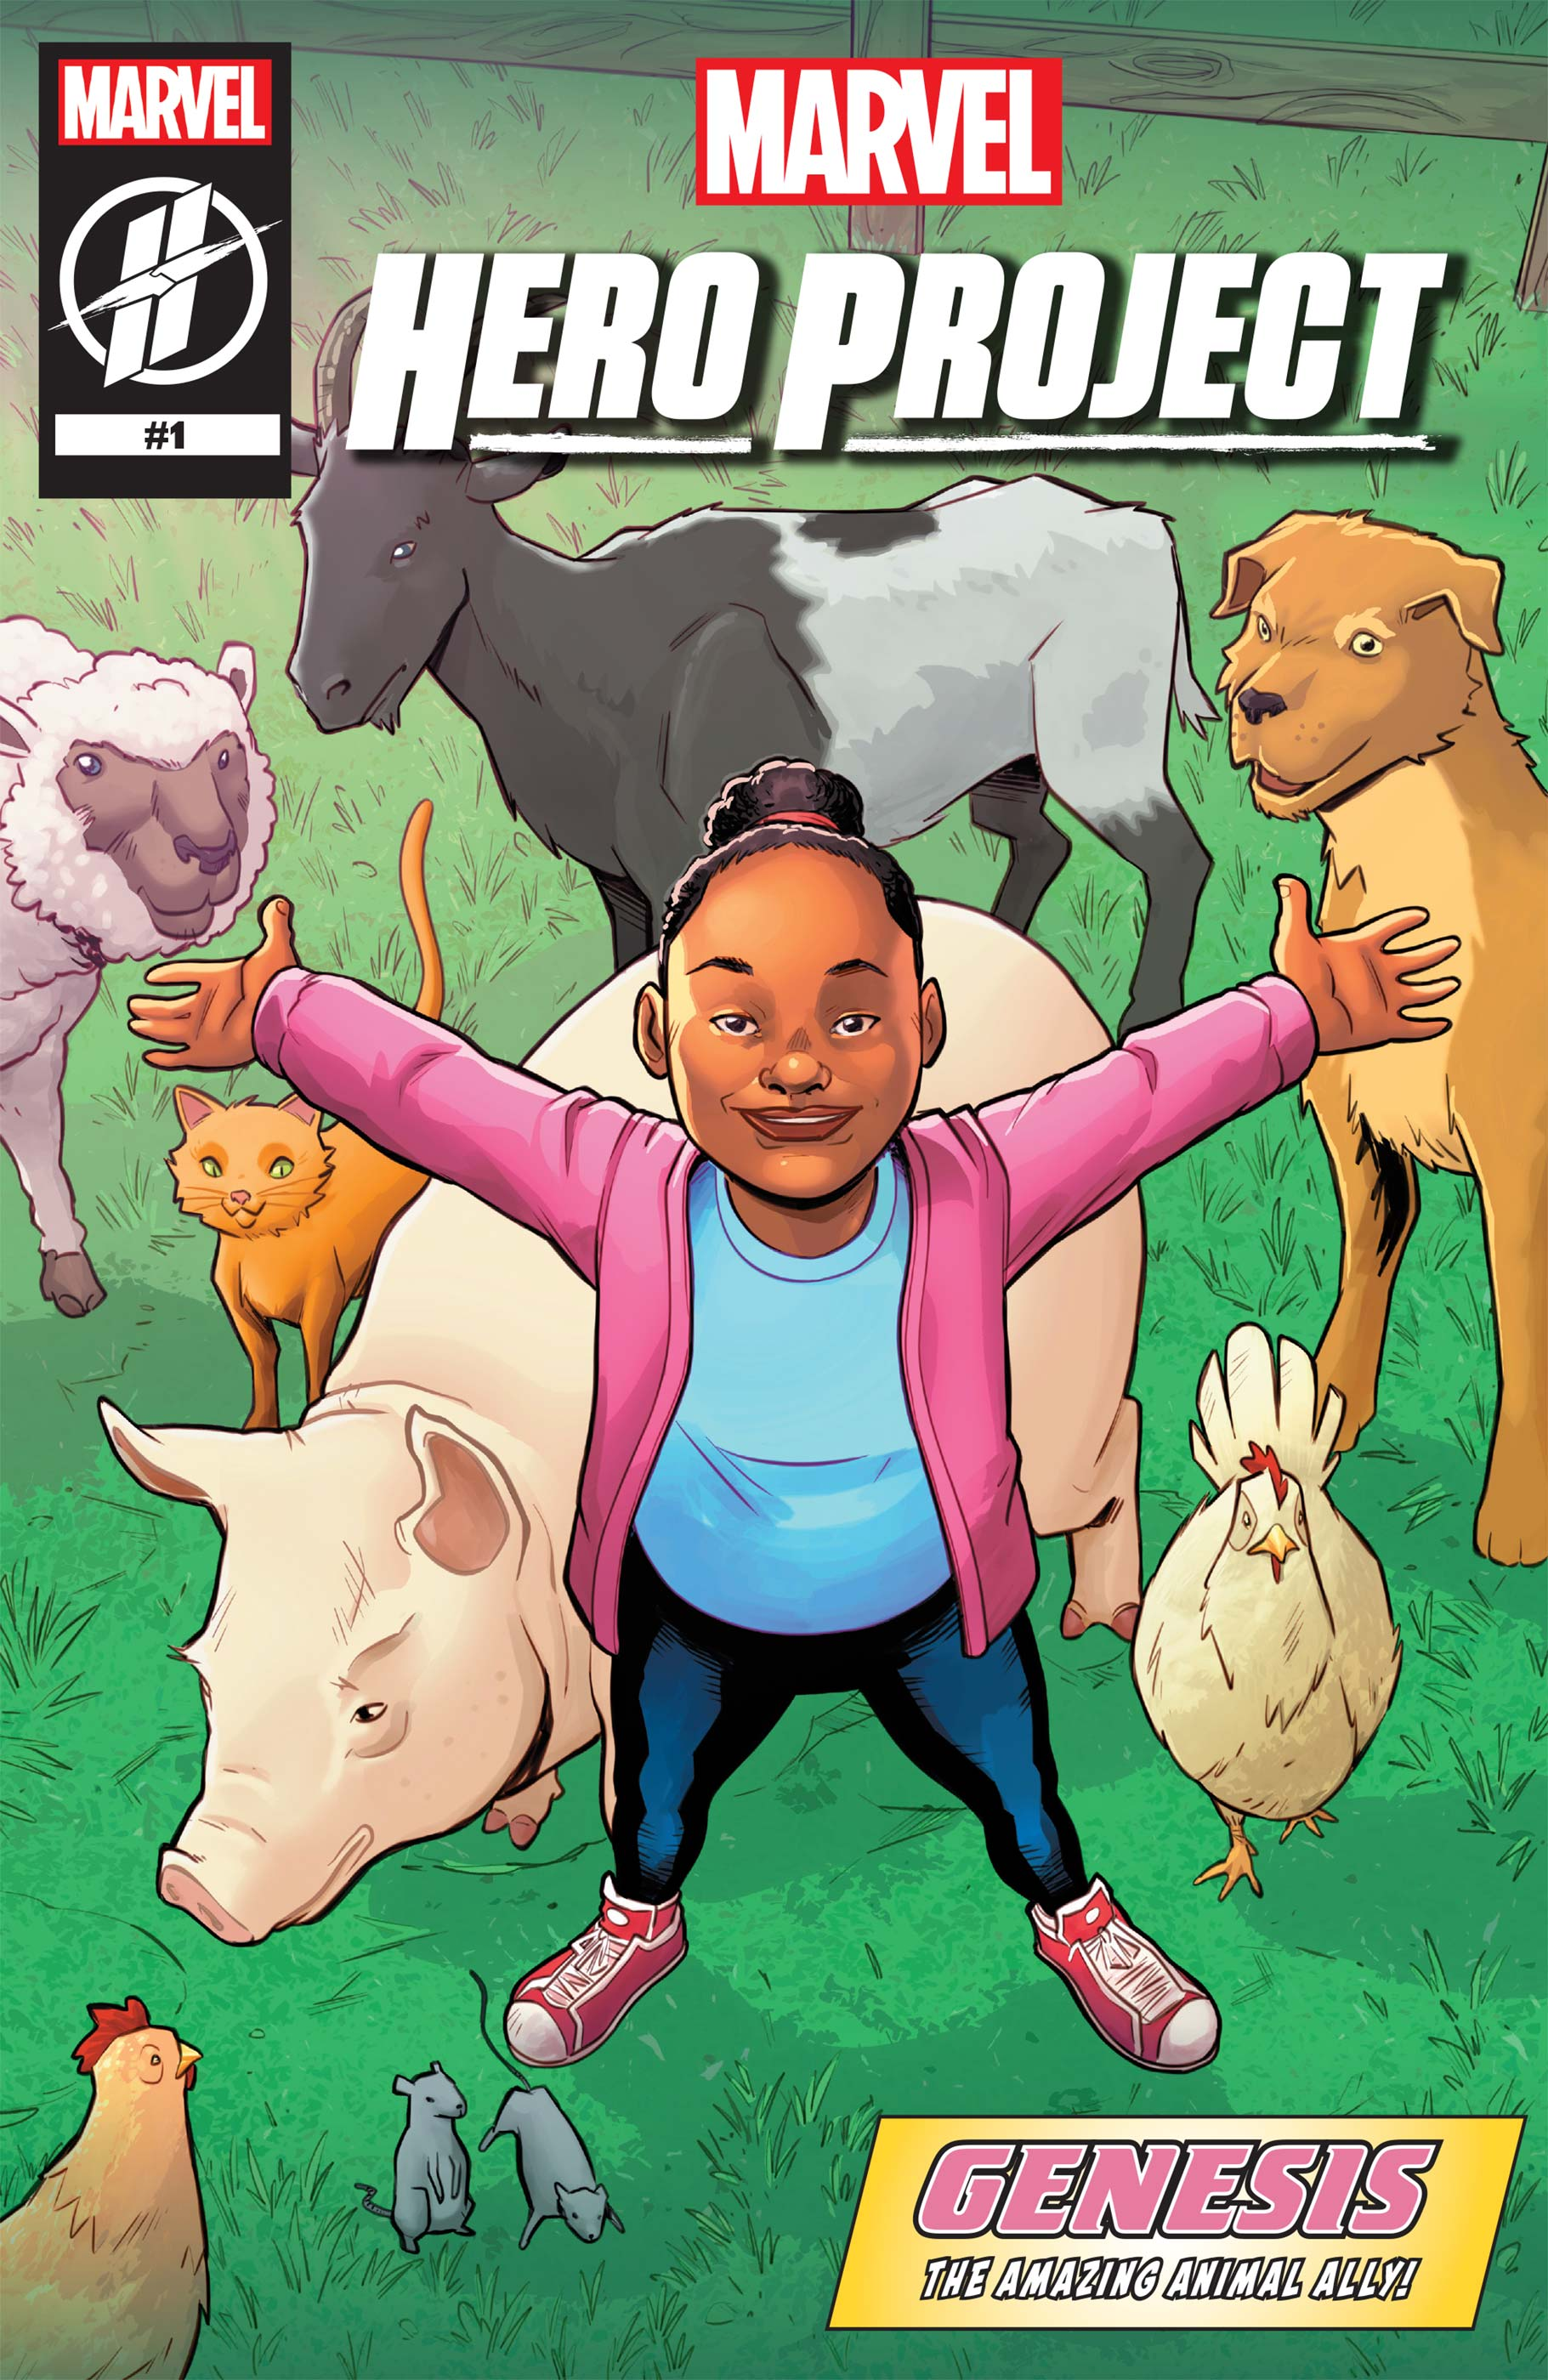 Marvel's Hero Project Season 1: Genesis the Amazing Animal Ally (2019) #1